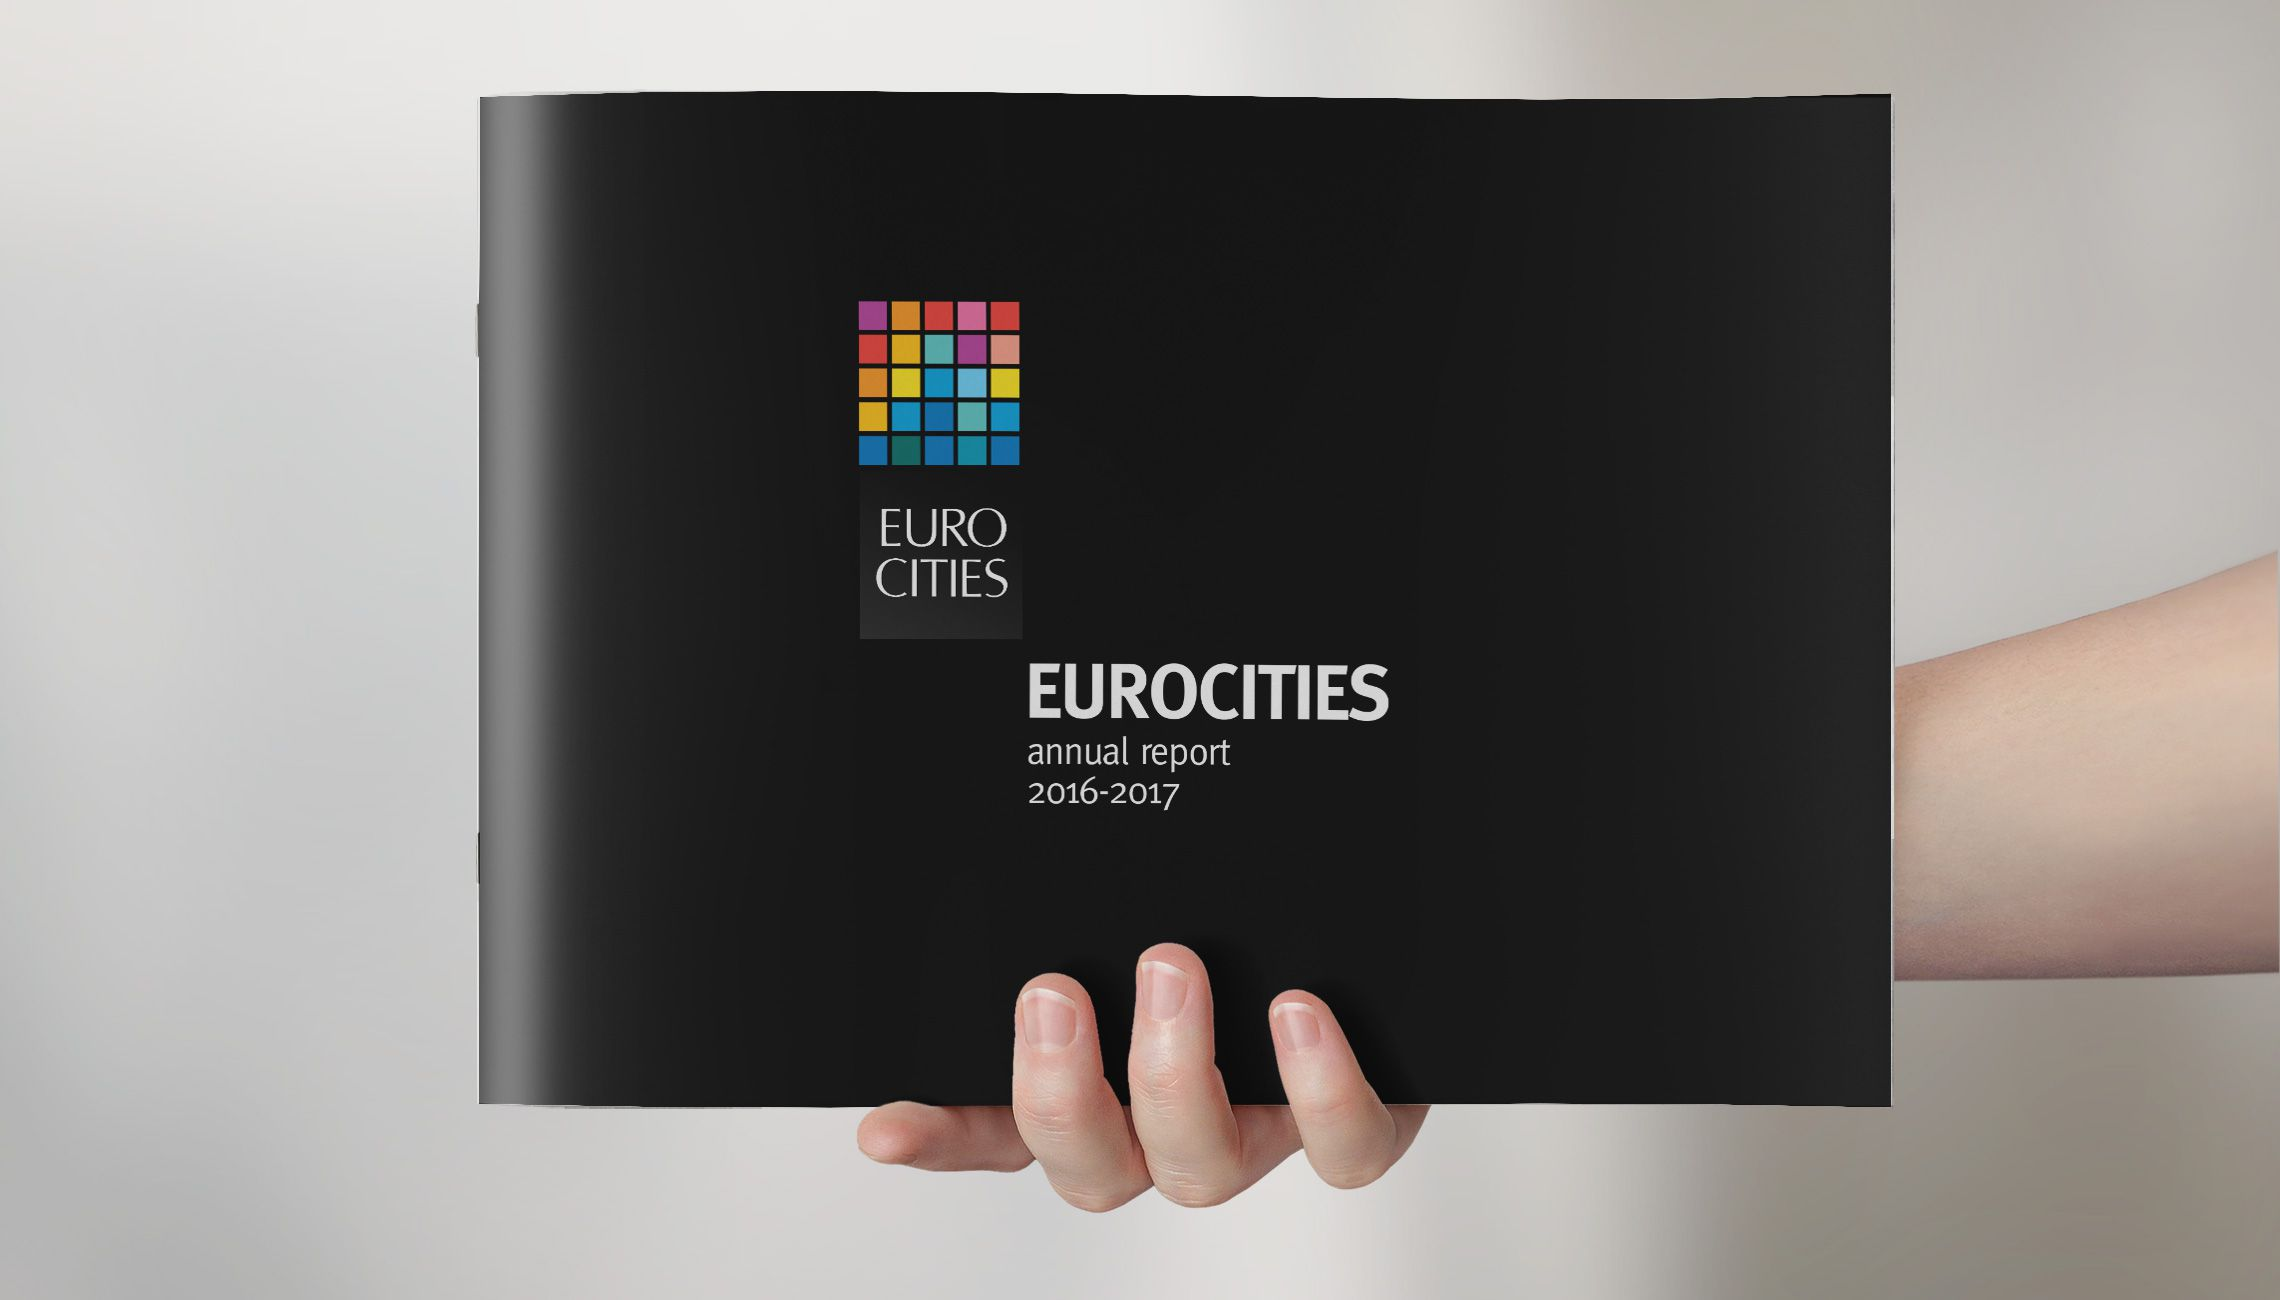 publication: Eurocities Annual report - image 1